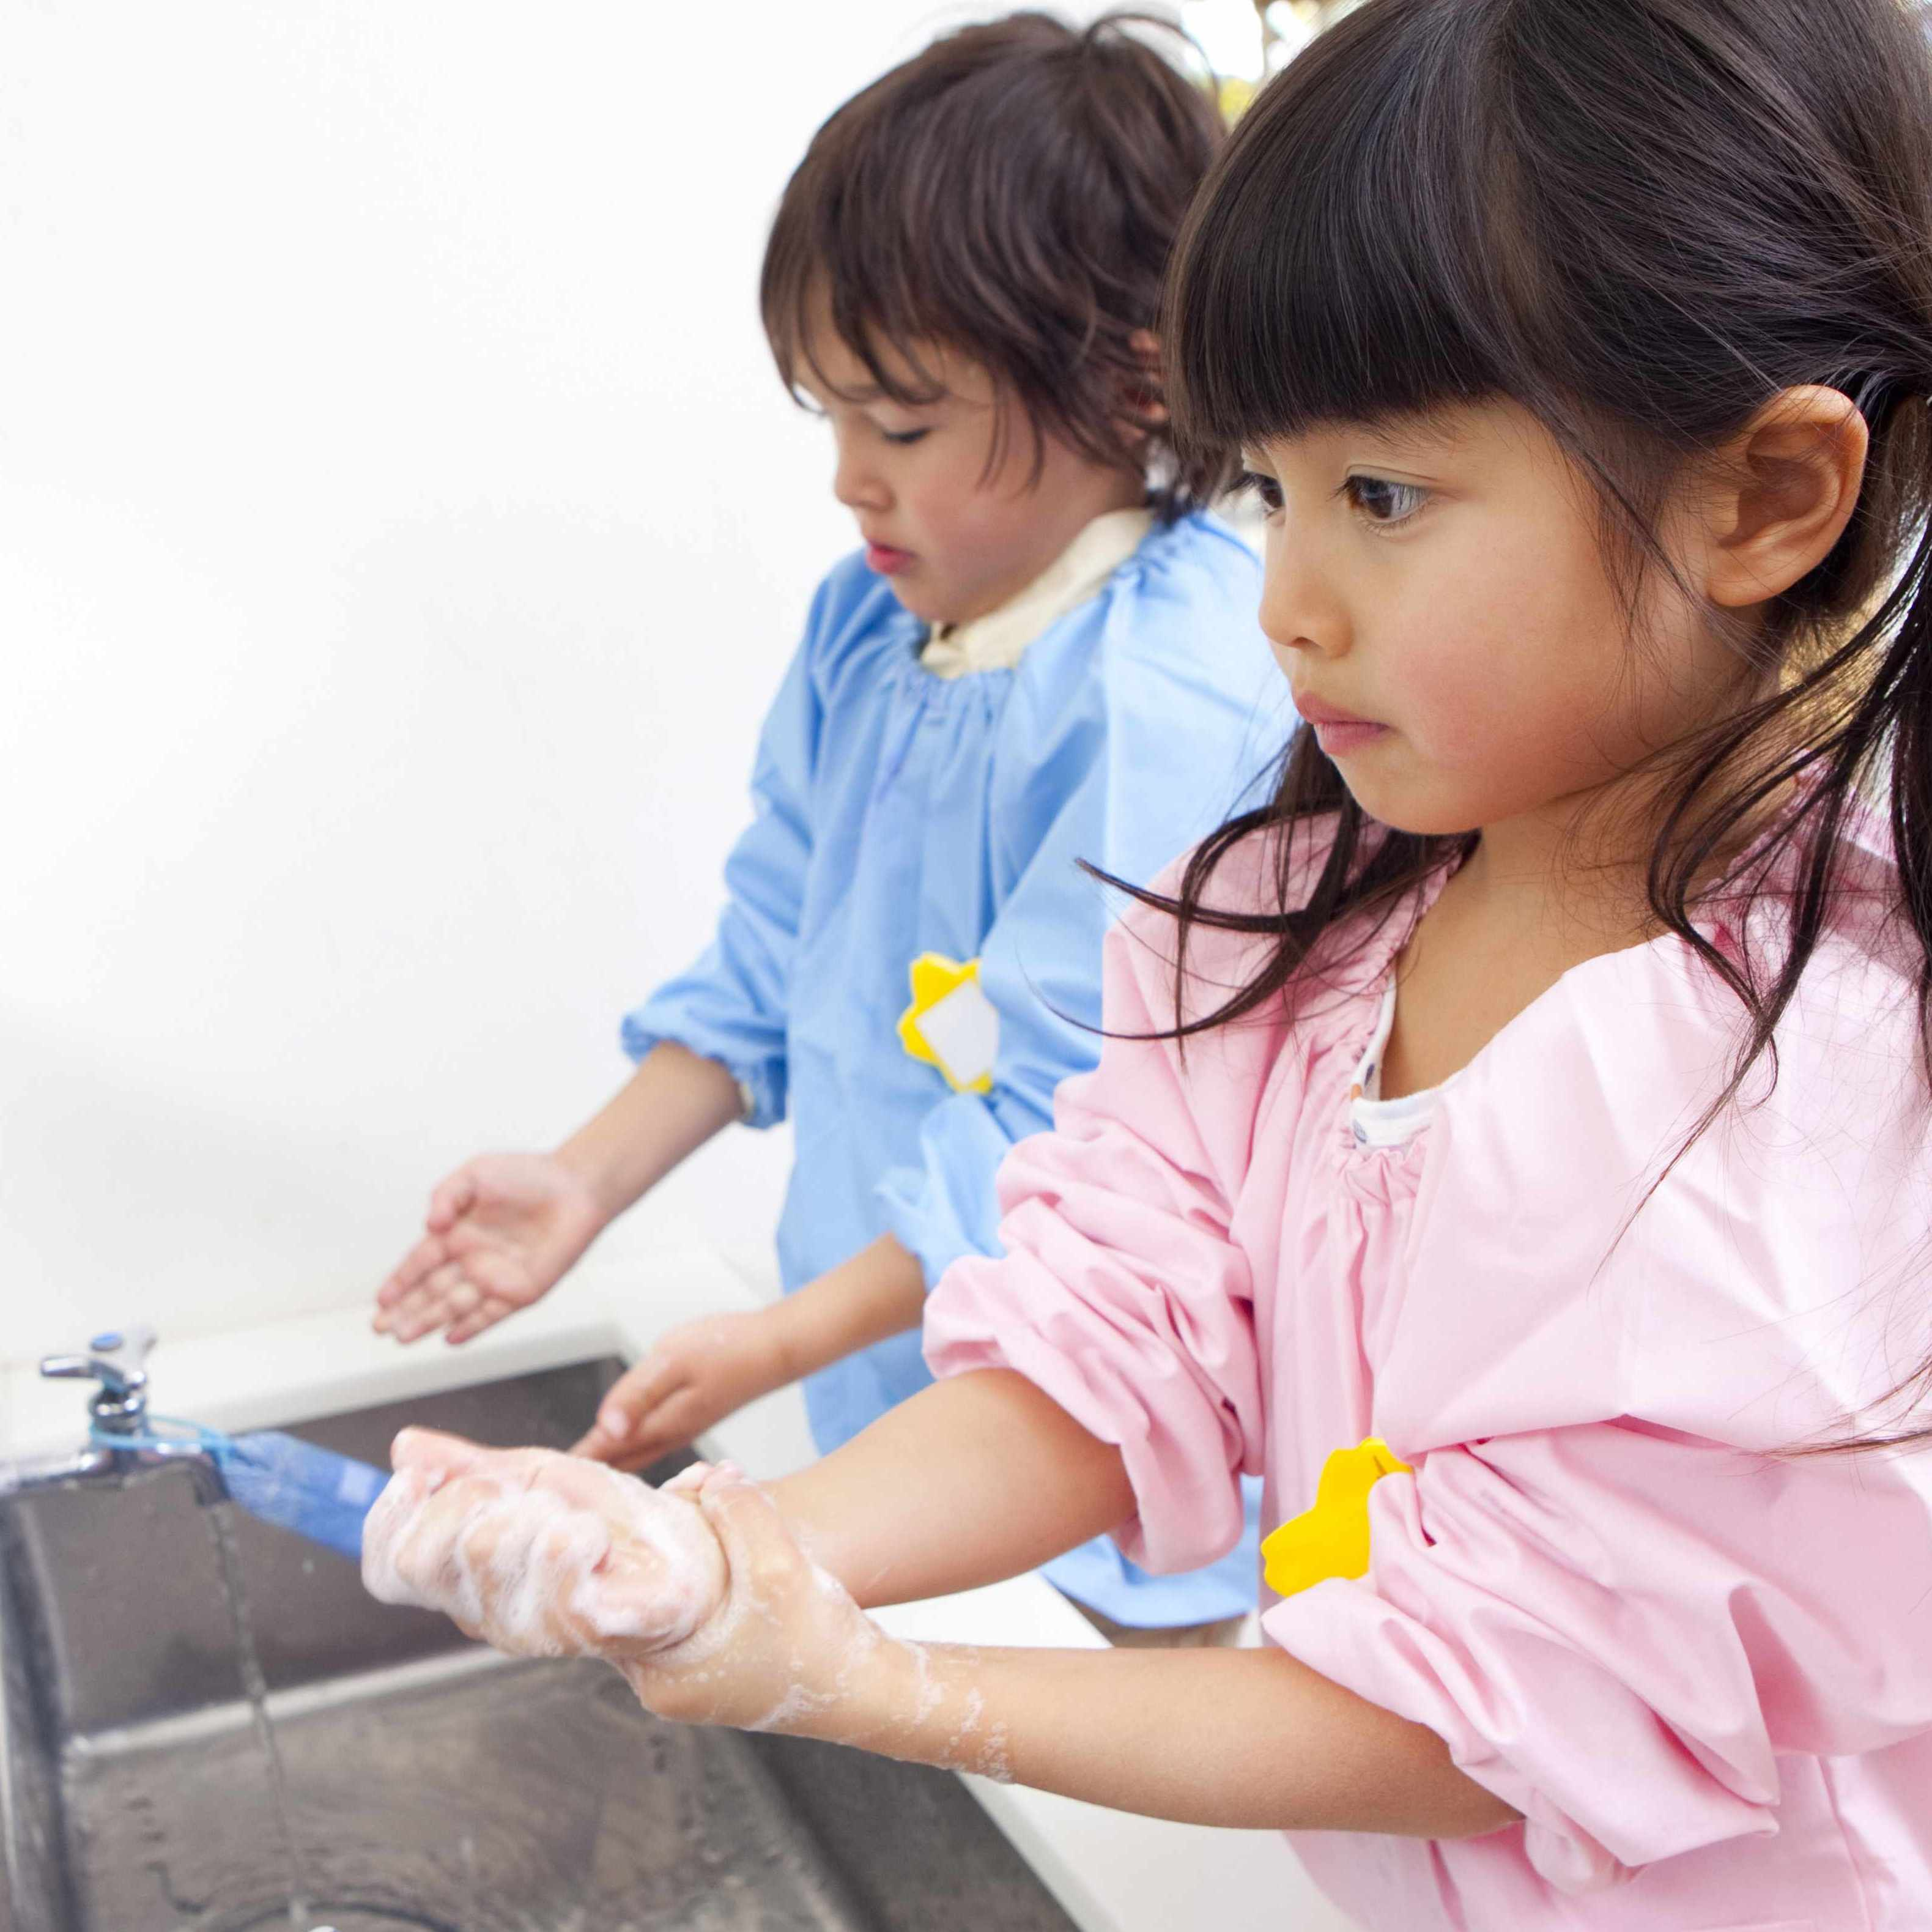 children washing hands in sink